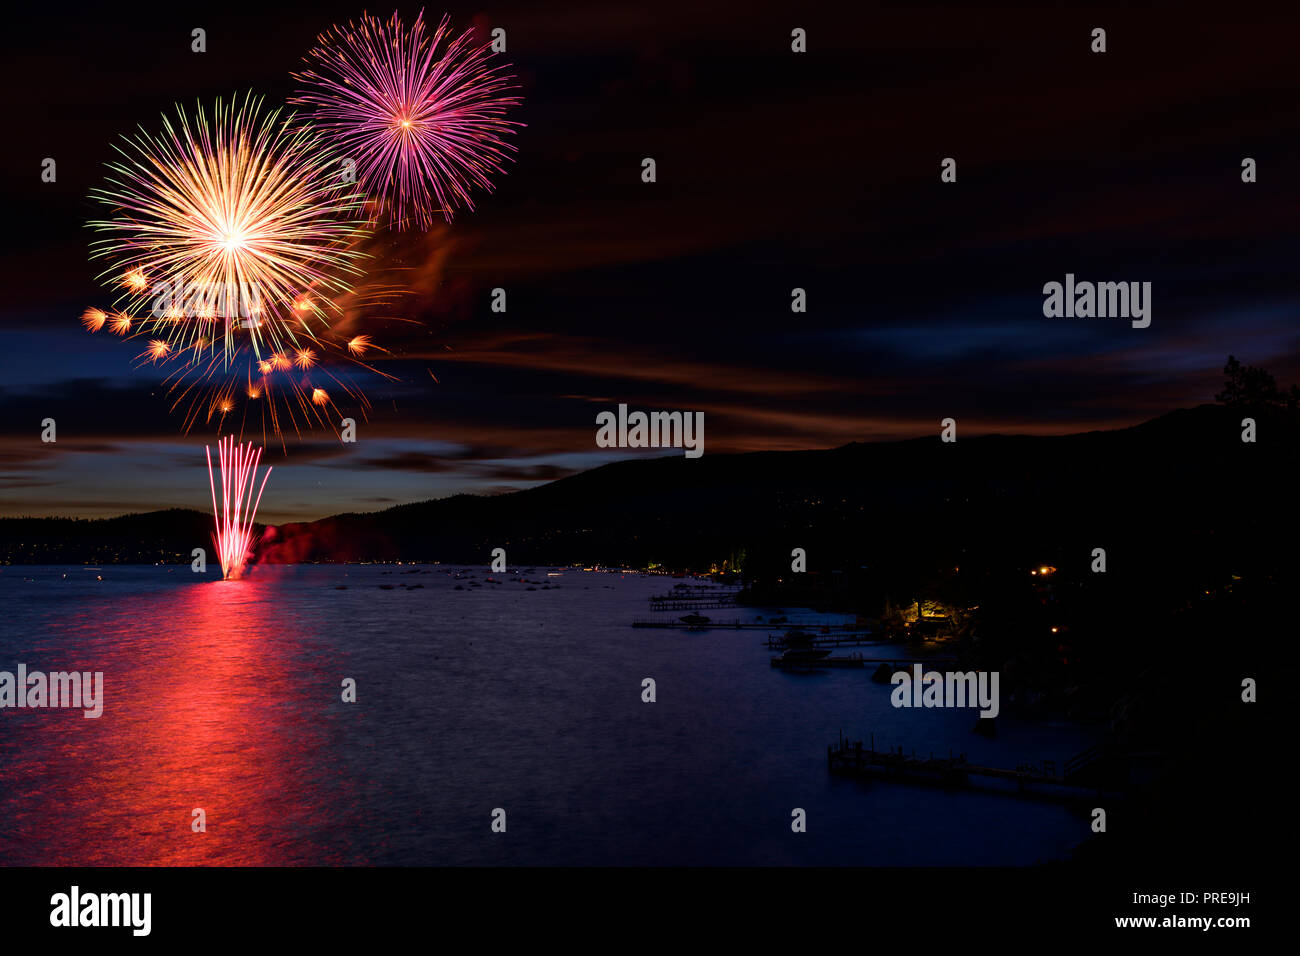 July 5 fireworks show in Incline Village, at Lake Tahoe, Nevada, North America. Stock Photo